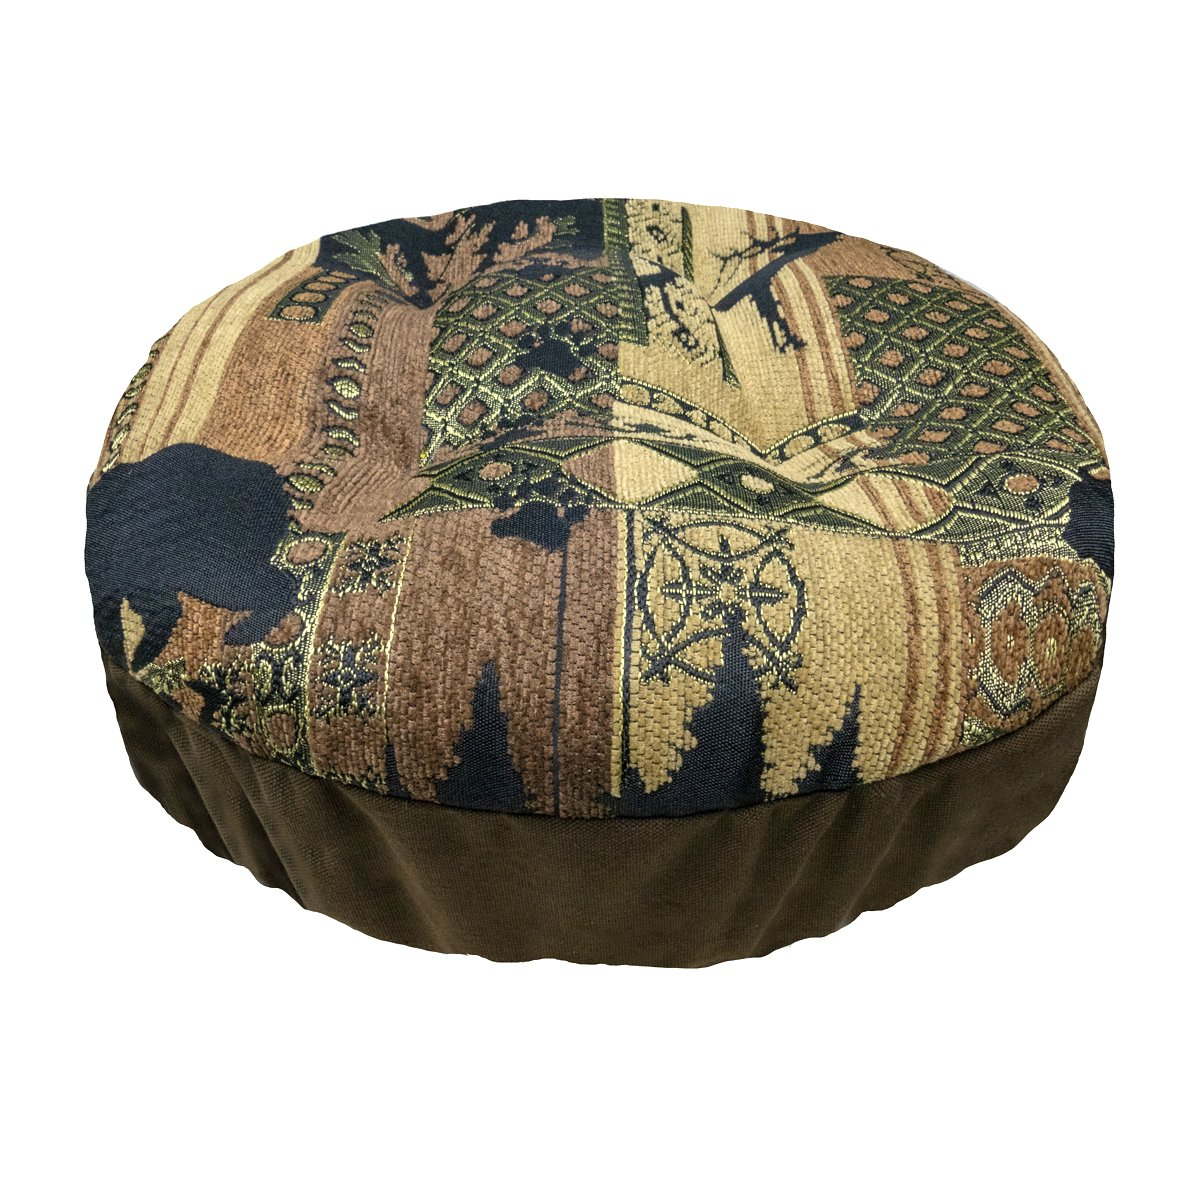 Woodlands Brentwood Round Padded Bar Stool Cover with Adjustable Drawstring Yoke - Size Standard - Latex Foam Fill Barstool Cushion - Made in USA (Gold, Brown, Tan, Gold, Black/Lodge)